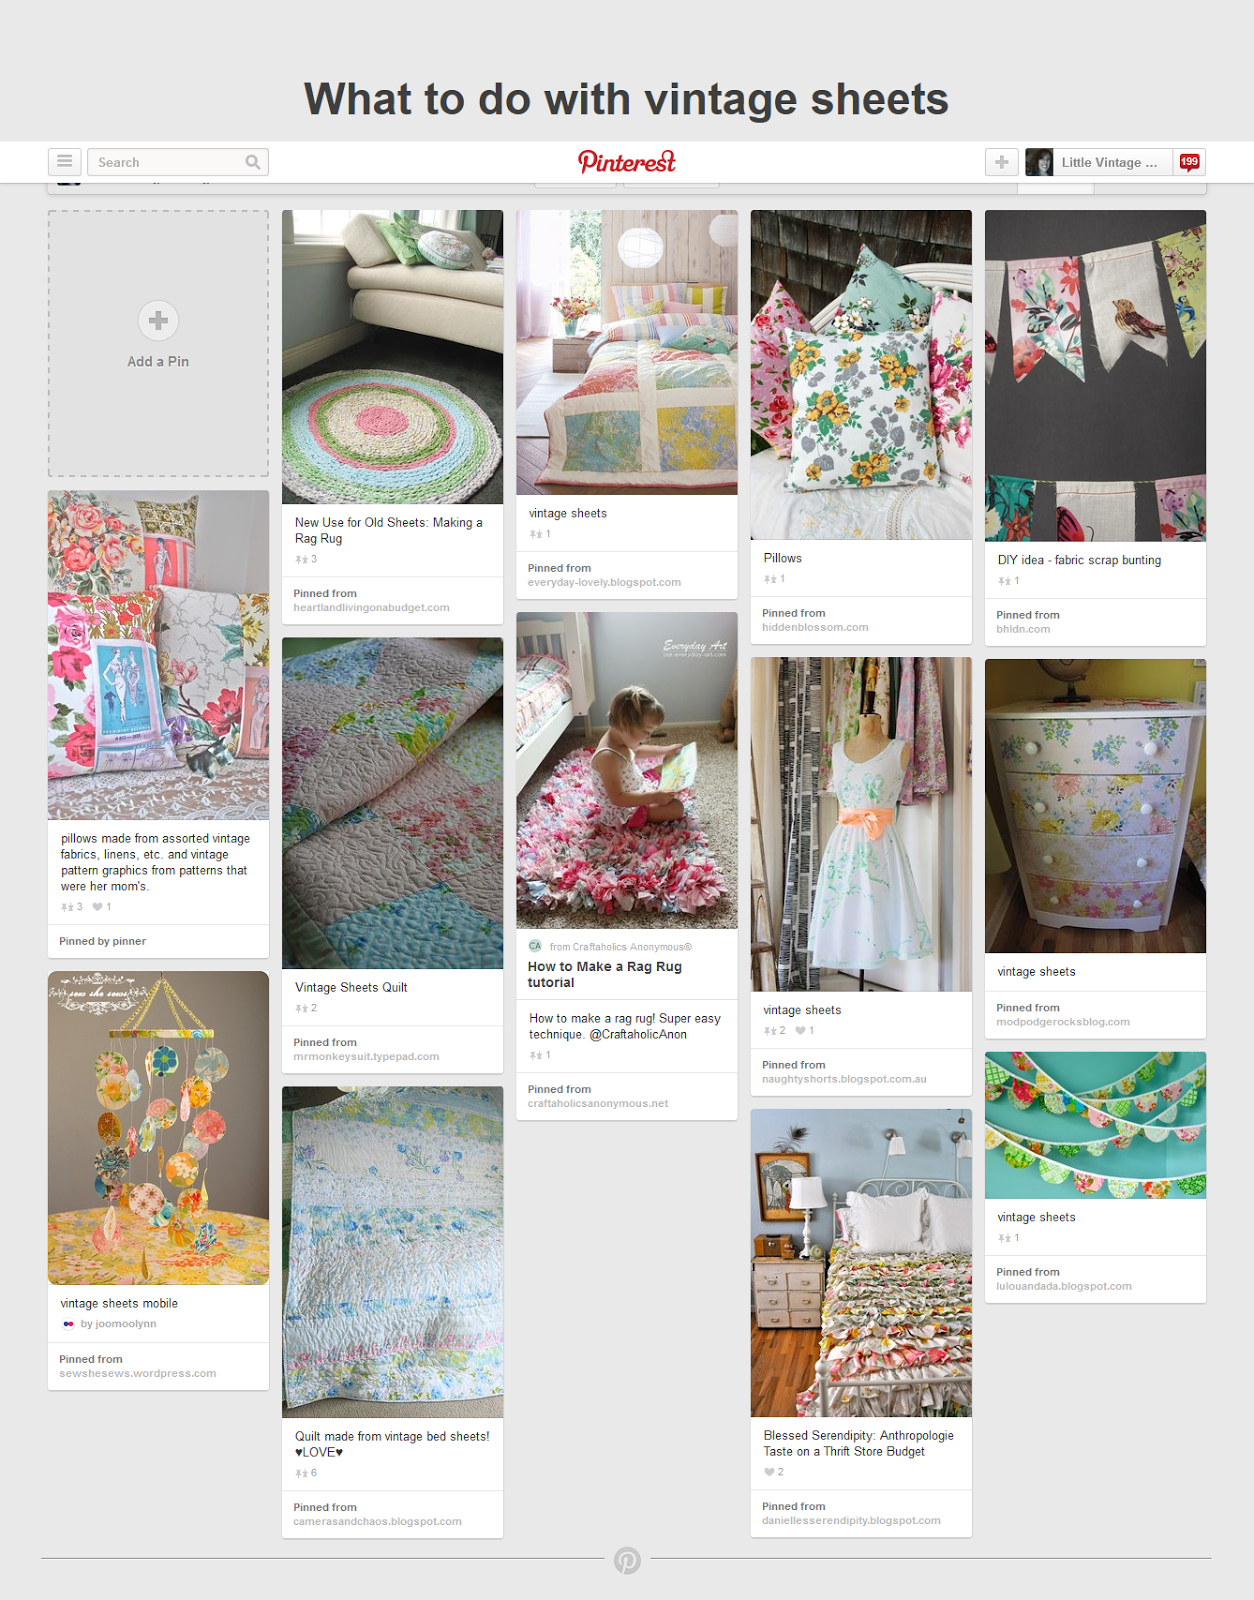 http://www.pinterest.com/vintagecottage/what-to-do-with-vintage-sheets/